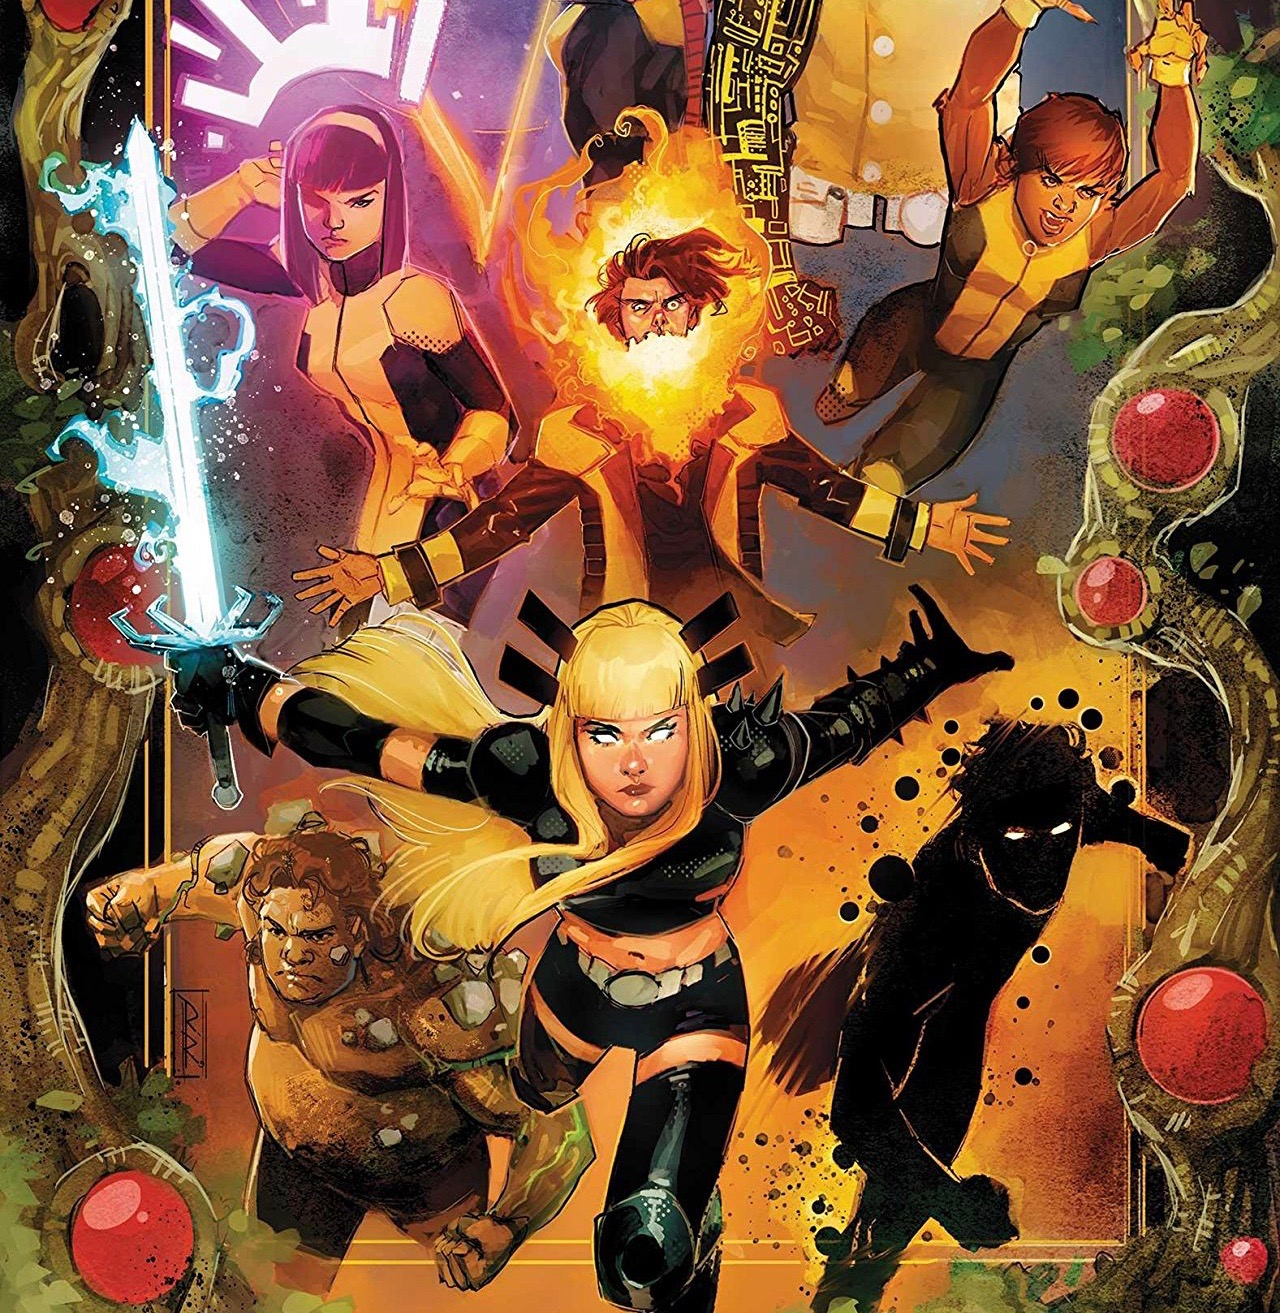 X-Men Week continues as we check in with Krakoa's New Mutants!